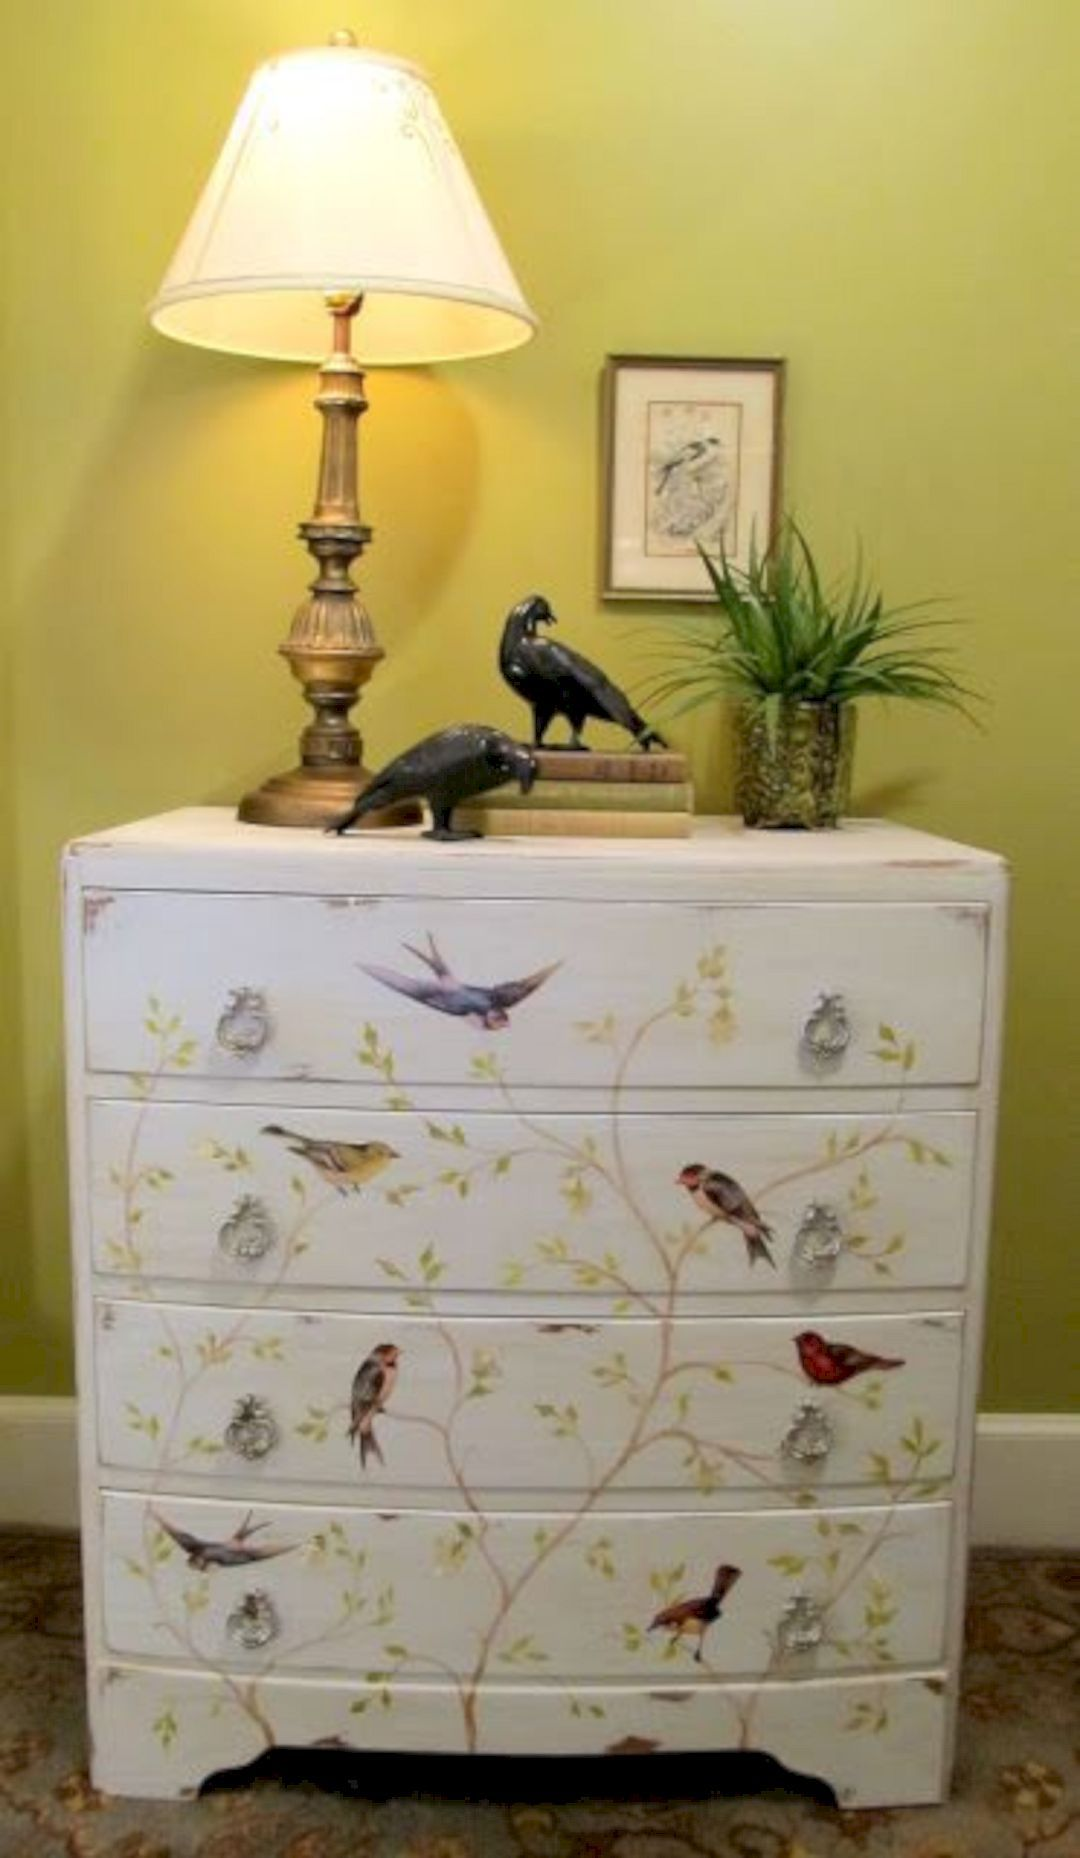 17 Stunning Decoupage Ideas to Makeover Your Furniture | Decoupage ...